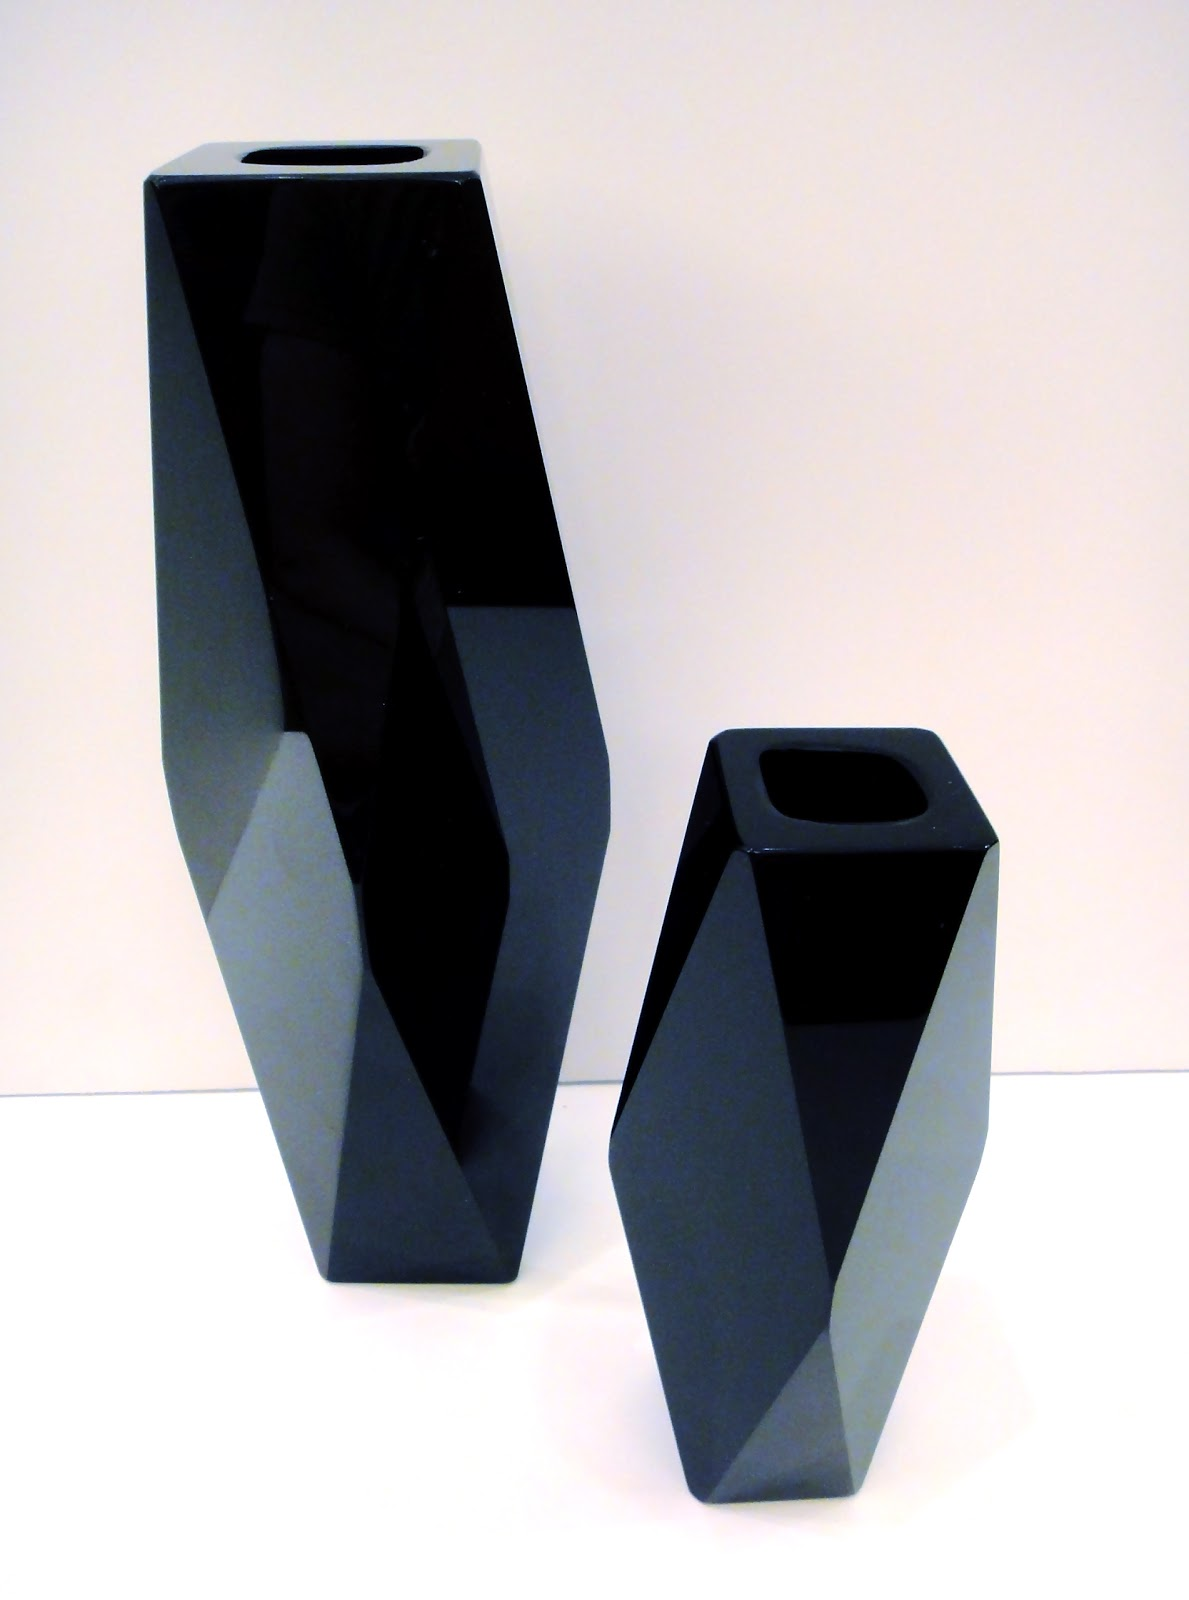 The end of history august 2011 from the italian masters of faceted glass mandruzzato two vintage pure black glass vases with original paper labels in tact reviewsmspy